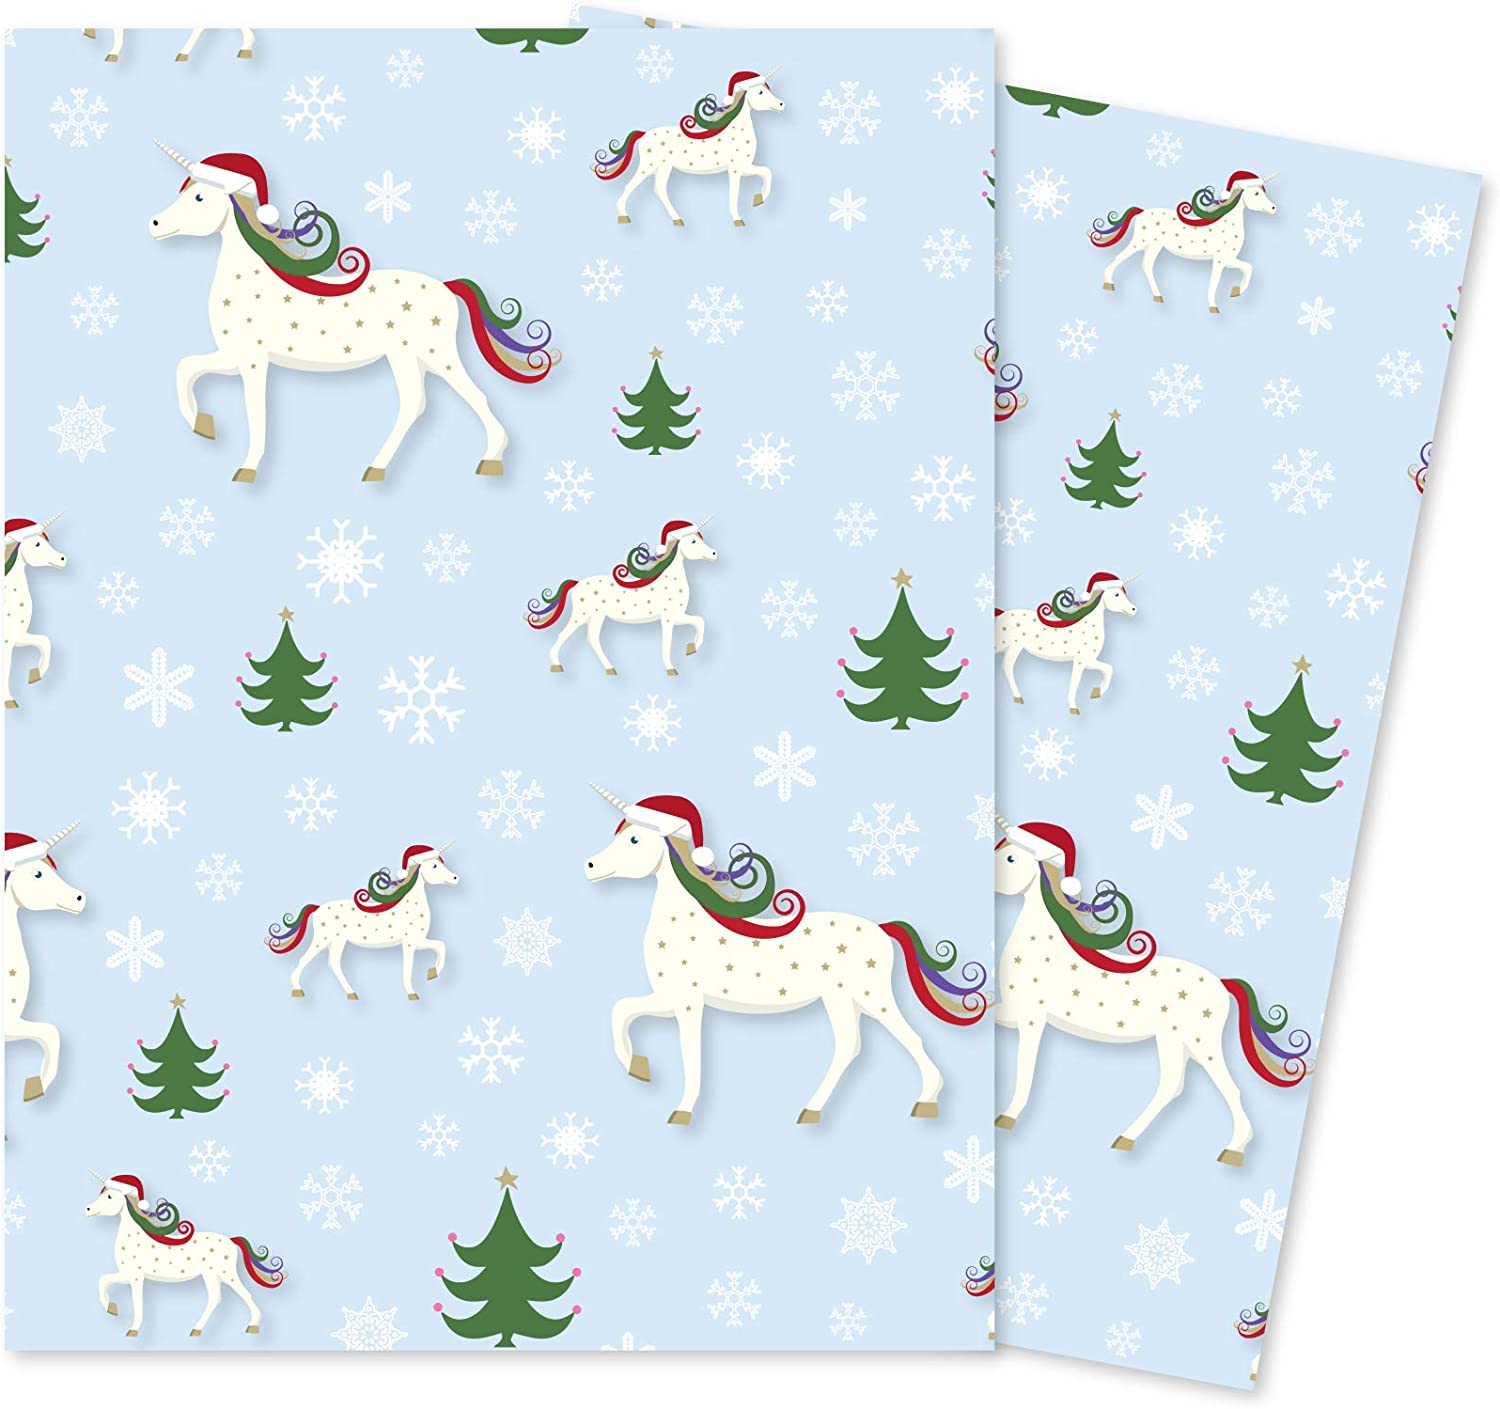 Peppa Pig Christmas Wrapping Paper Limited Edition 2 sheets and 2 tags Gift Wrap